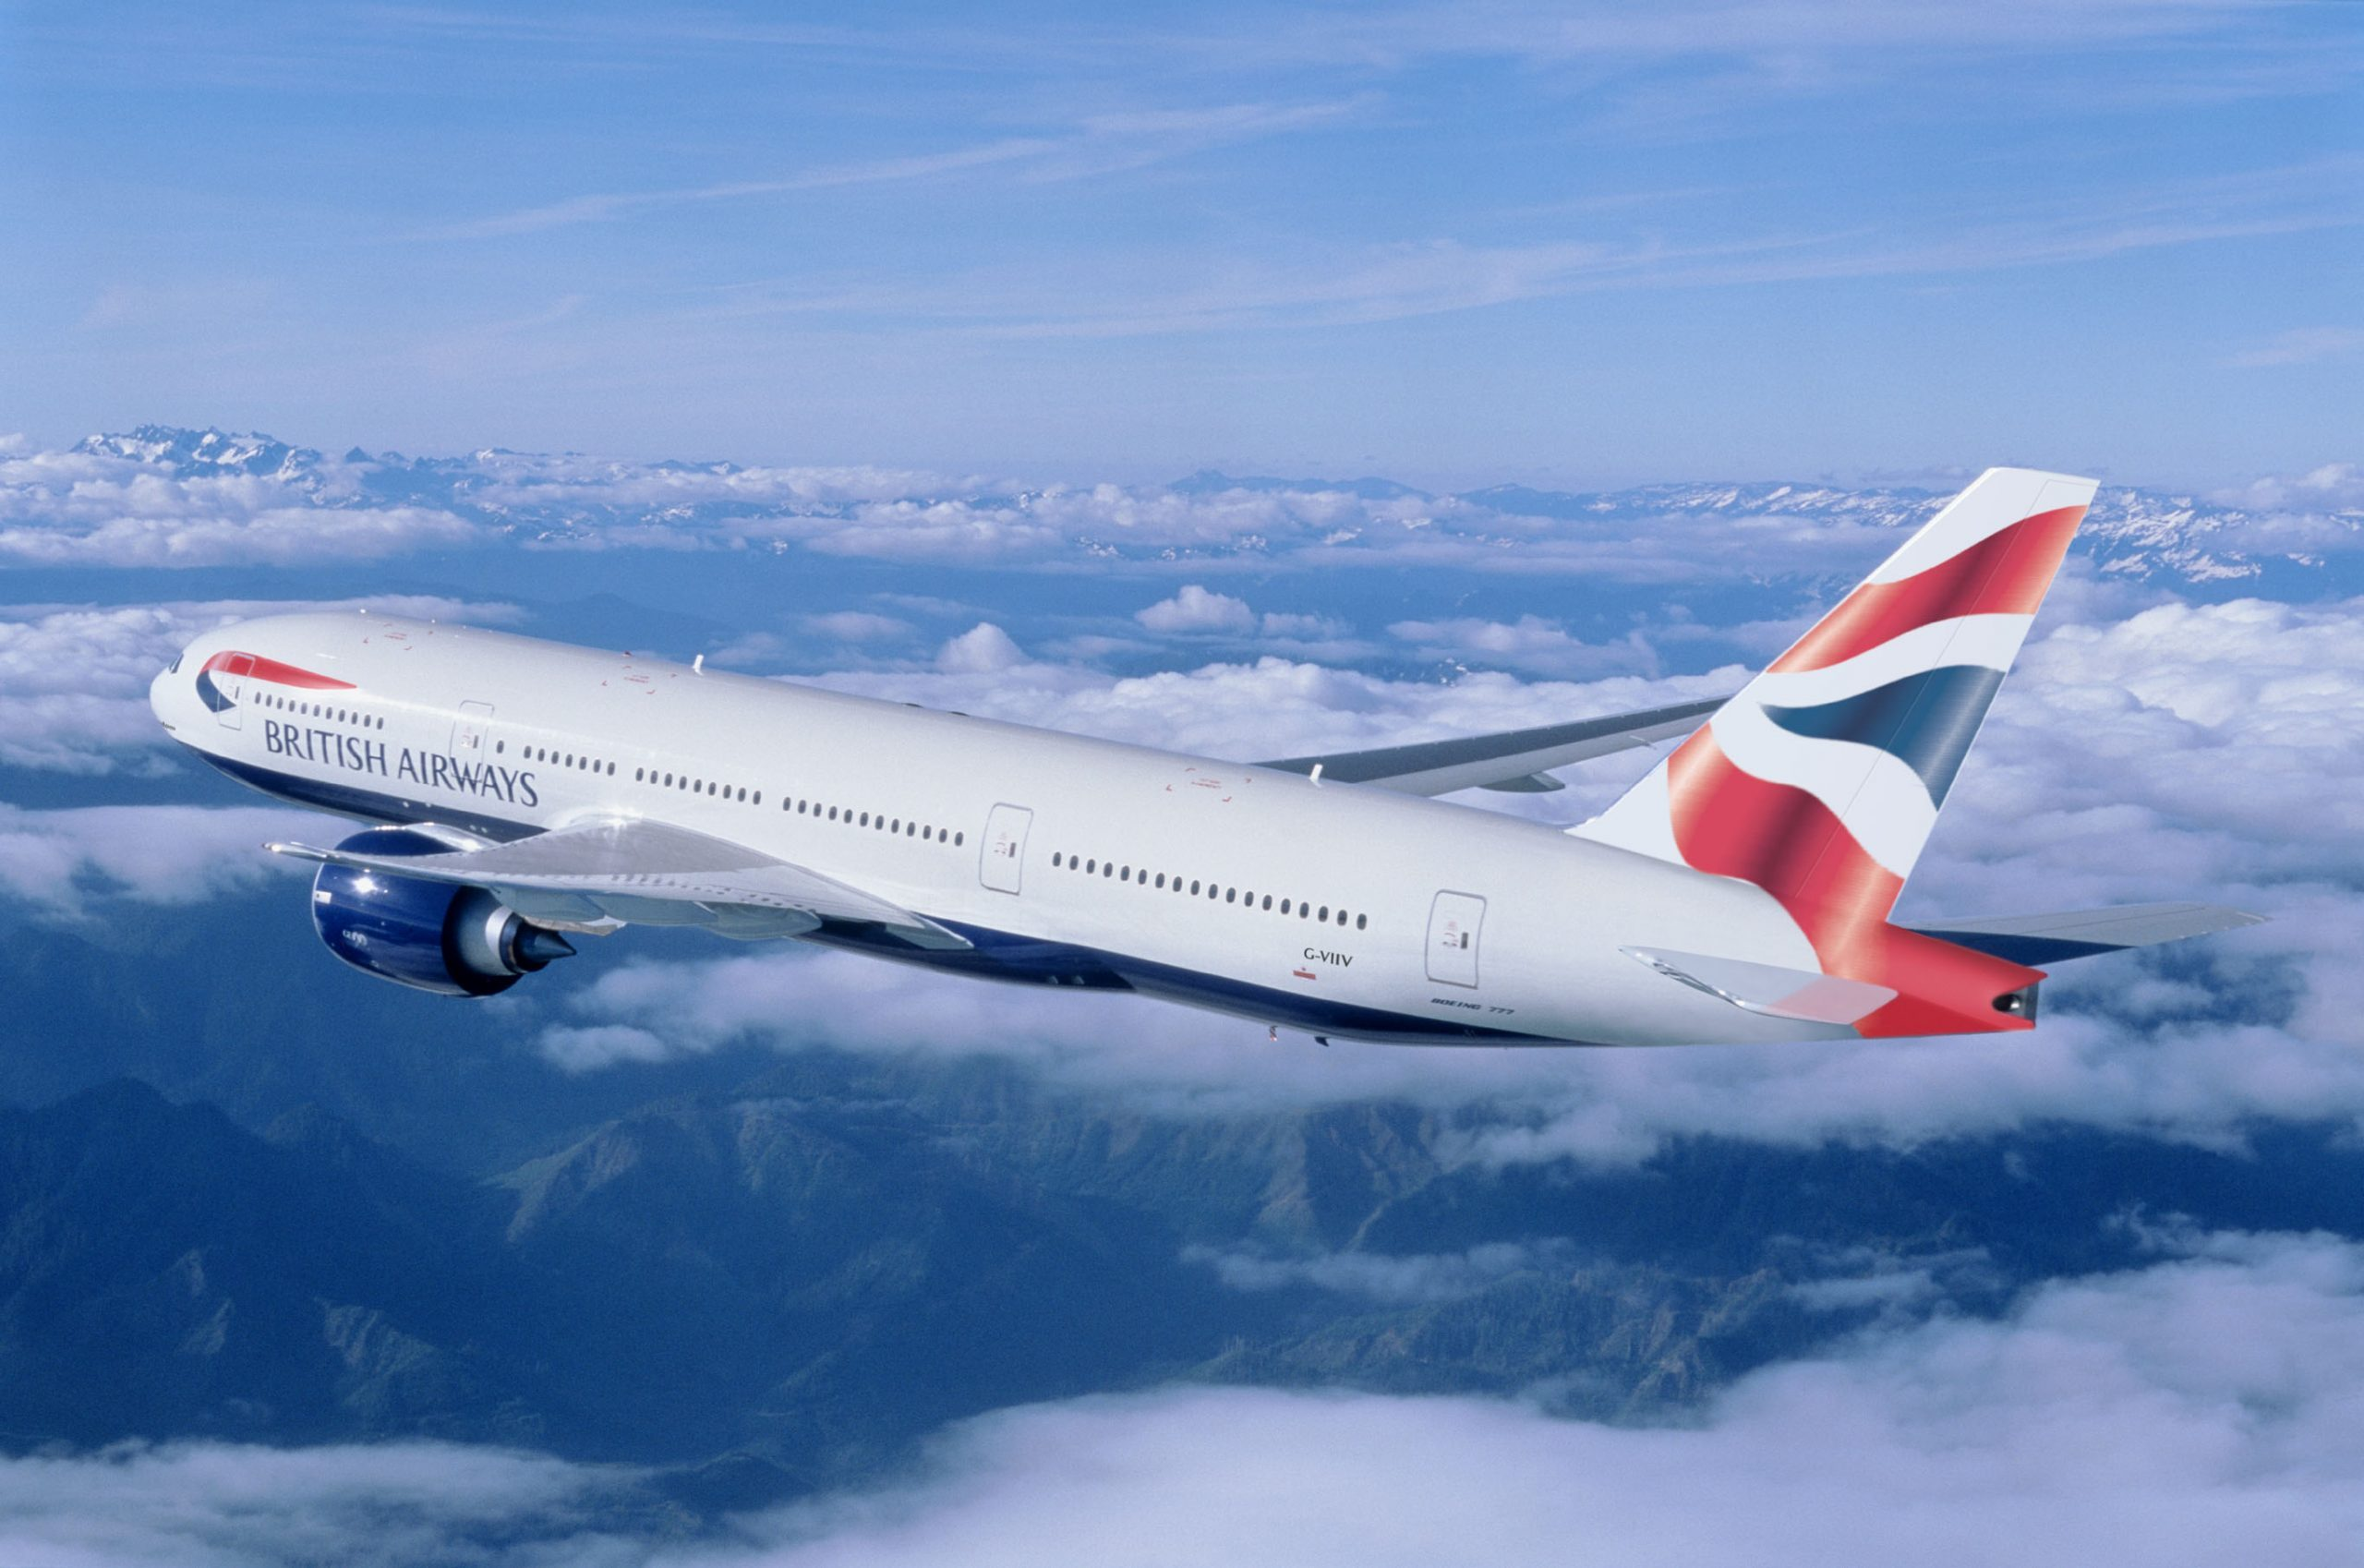 Boeing 777 de British Airways